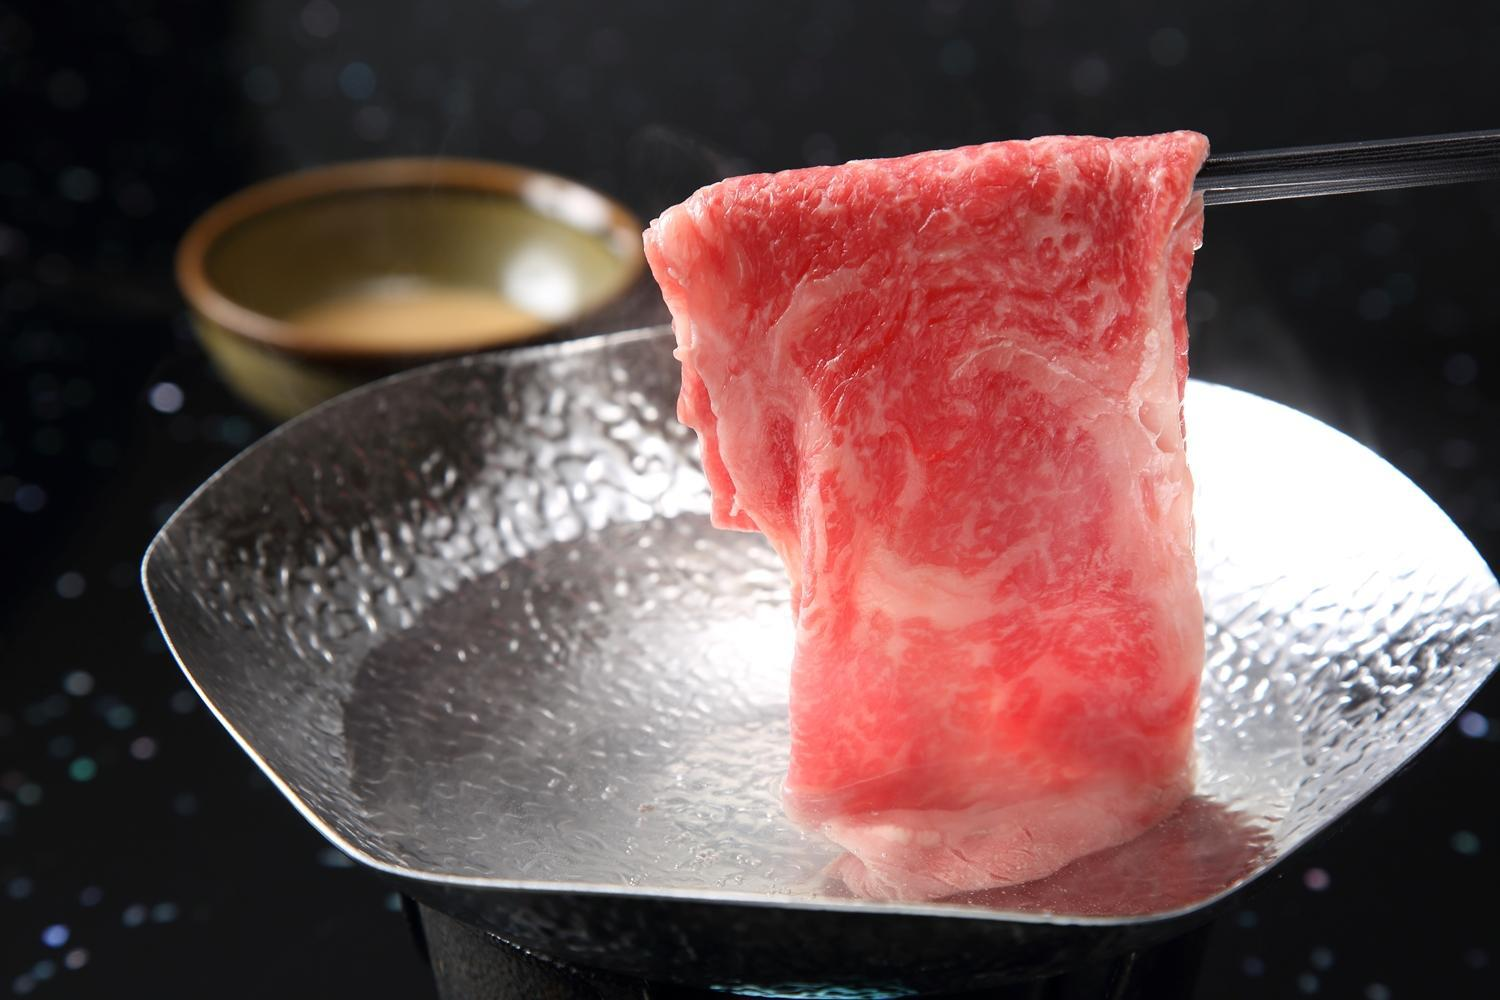 Kamar Bergaya Jepang dengan Pemandian Ruang Terbuka – Termasuk Sarapan, Makan Malam Shabushabu dan Steak Daging Sapi Kobe (Japanese Style Room with Open-Air Bath - Kobe Beef Steak, Shabushabu Dinner and Breakfast Included)